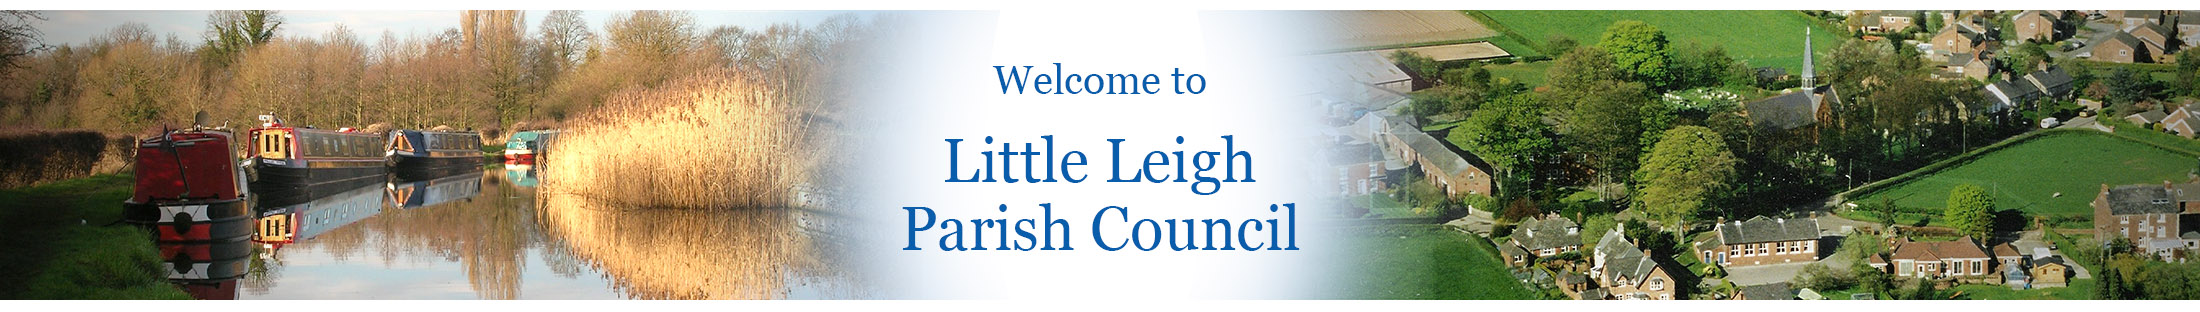 Header Image for Little Leigh Parish Council